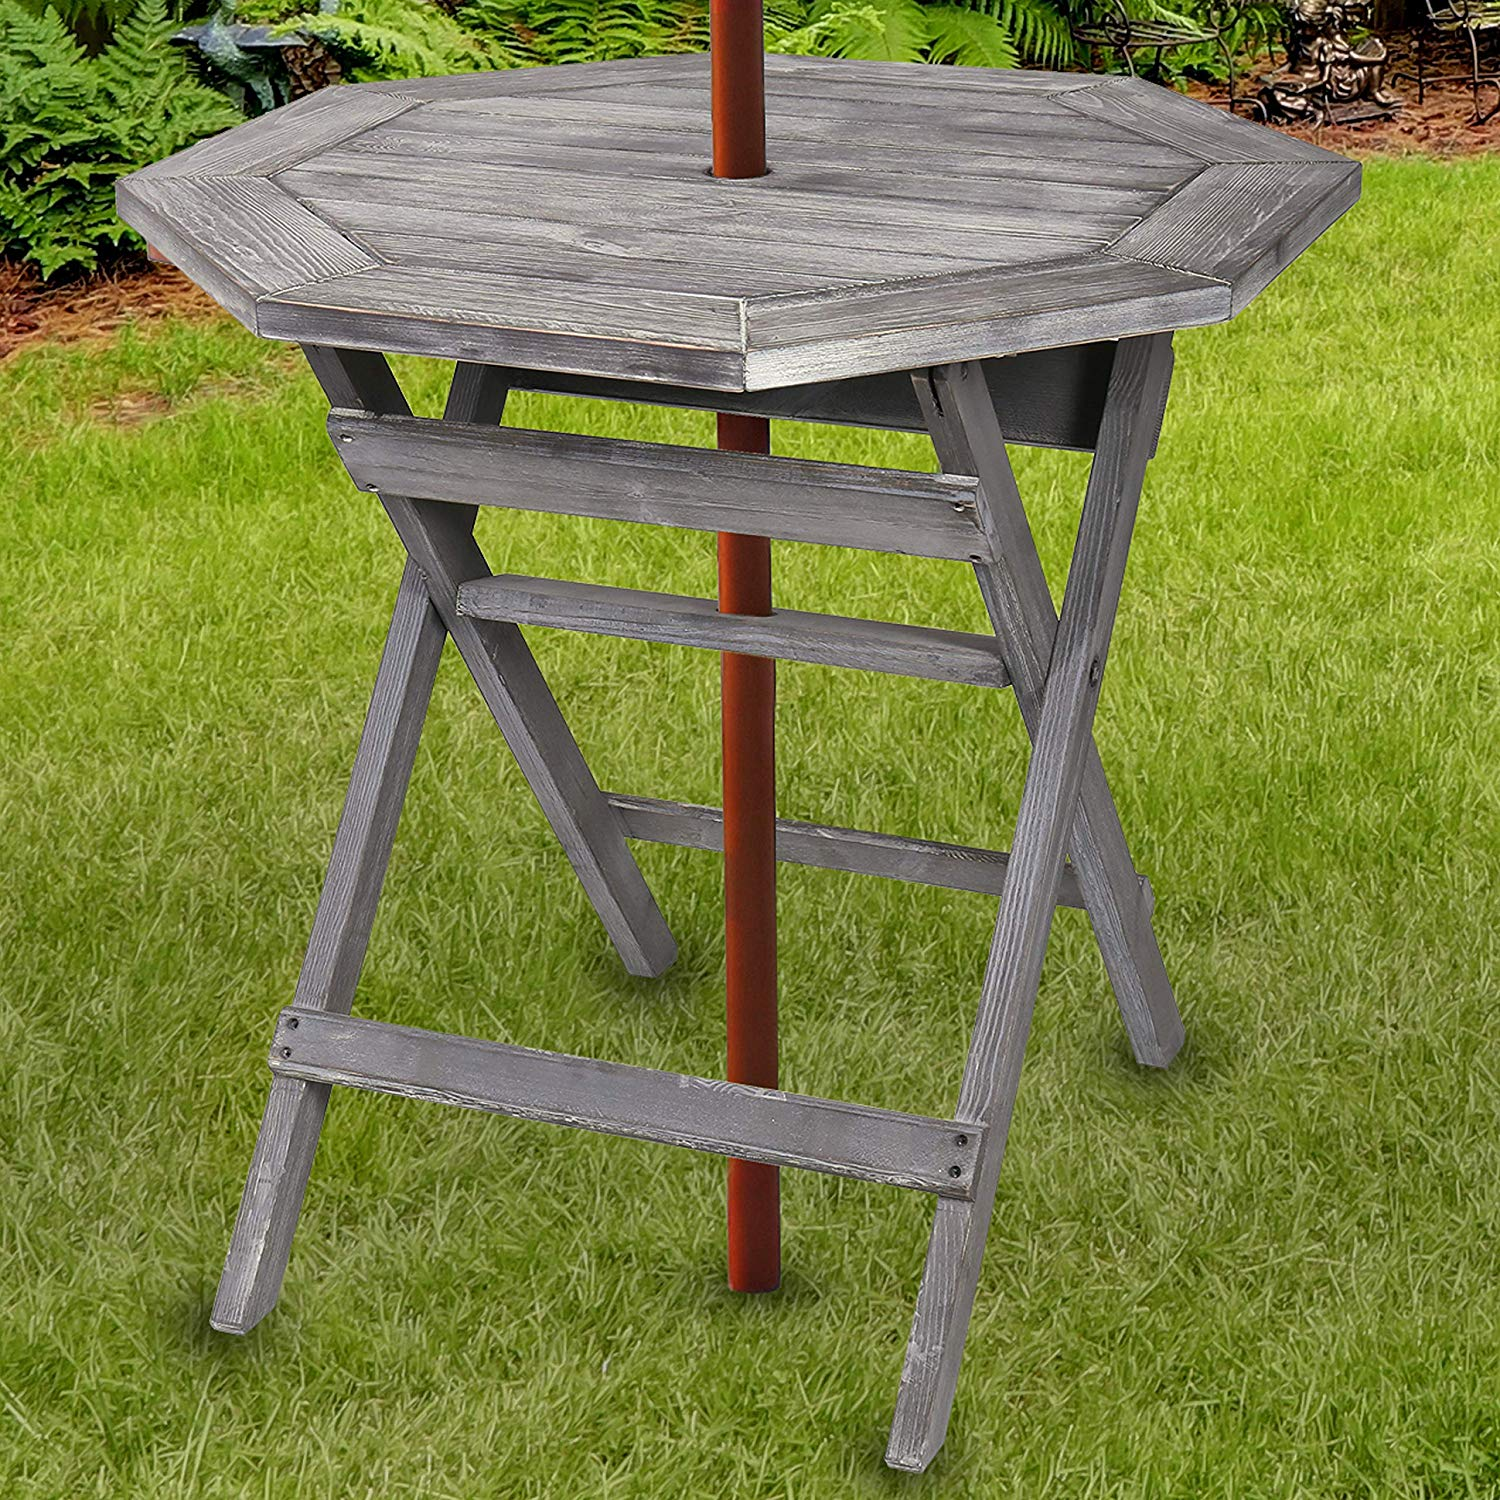 rustic barnwood gray pine wood folding octagonal inch patio accent table bistro with umbrella hole garden outdoor nautical porch lights parasol stand pier wall decor clearance